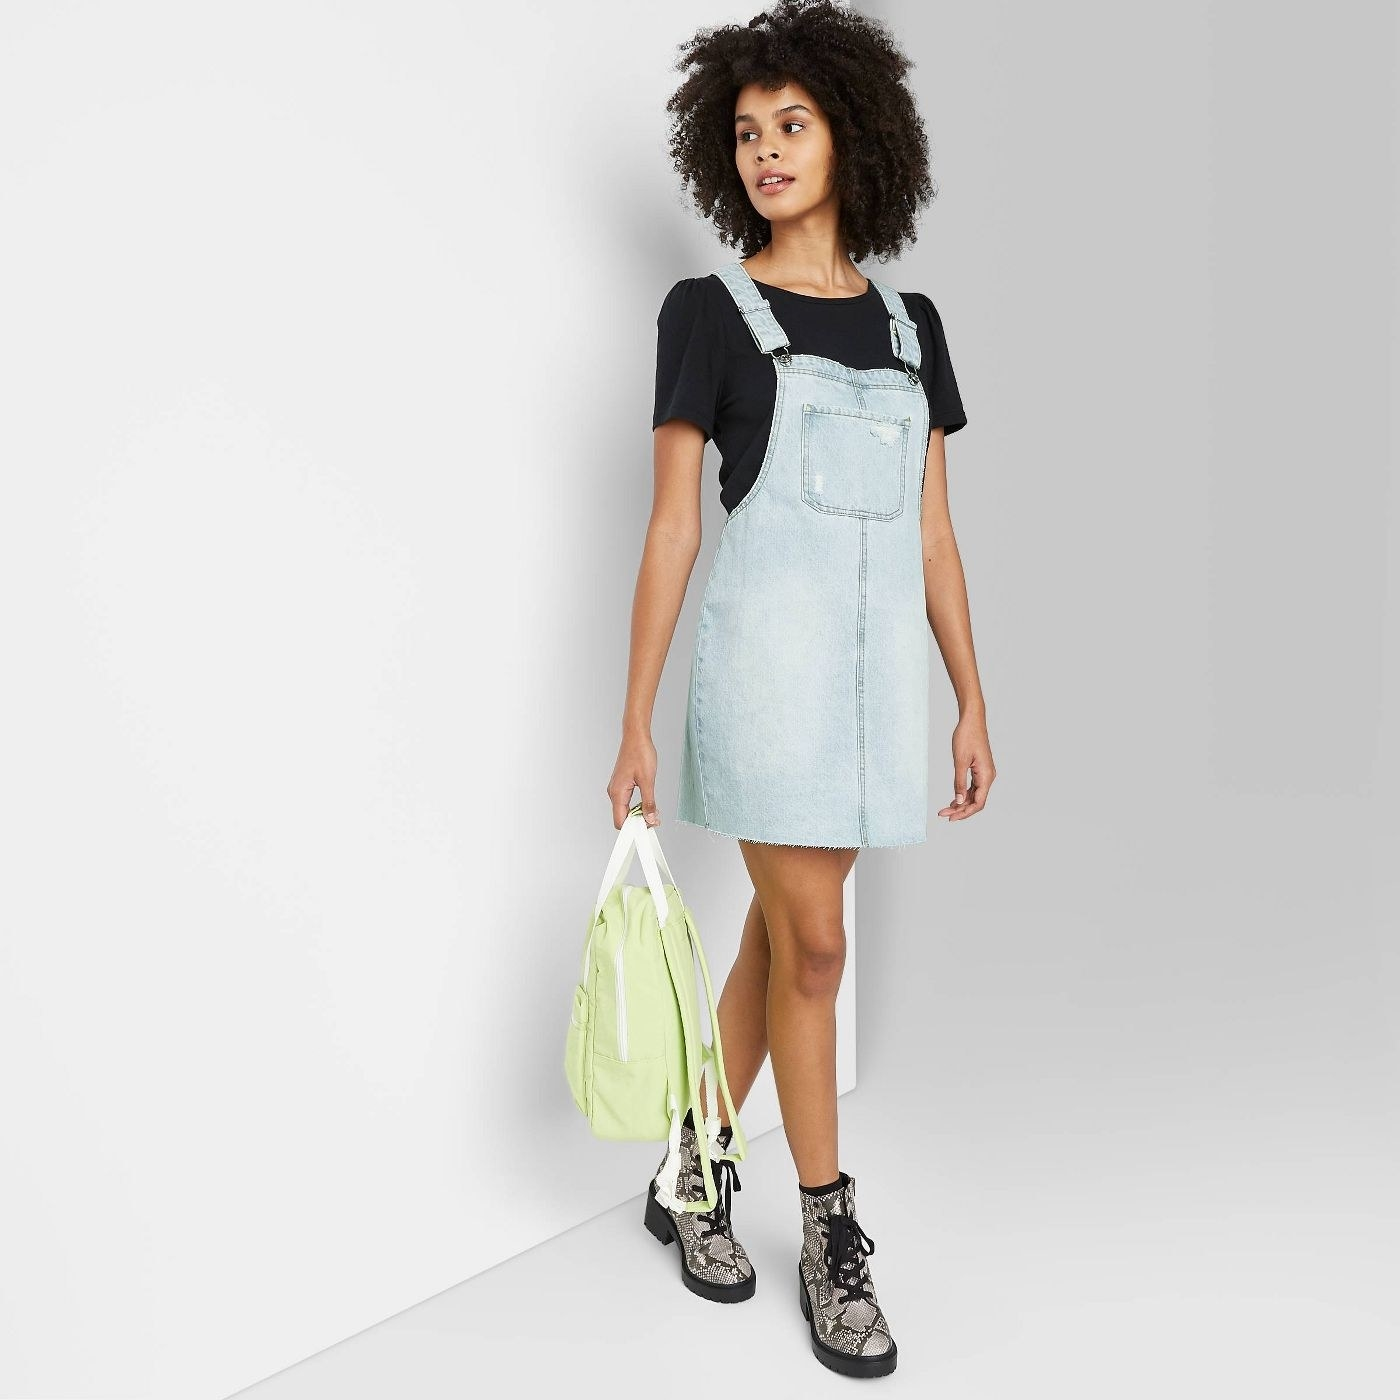 Model wearing mini overall dress that stops well above the knee